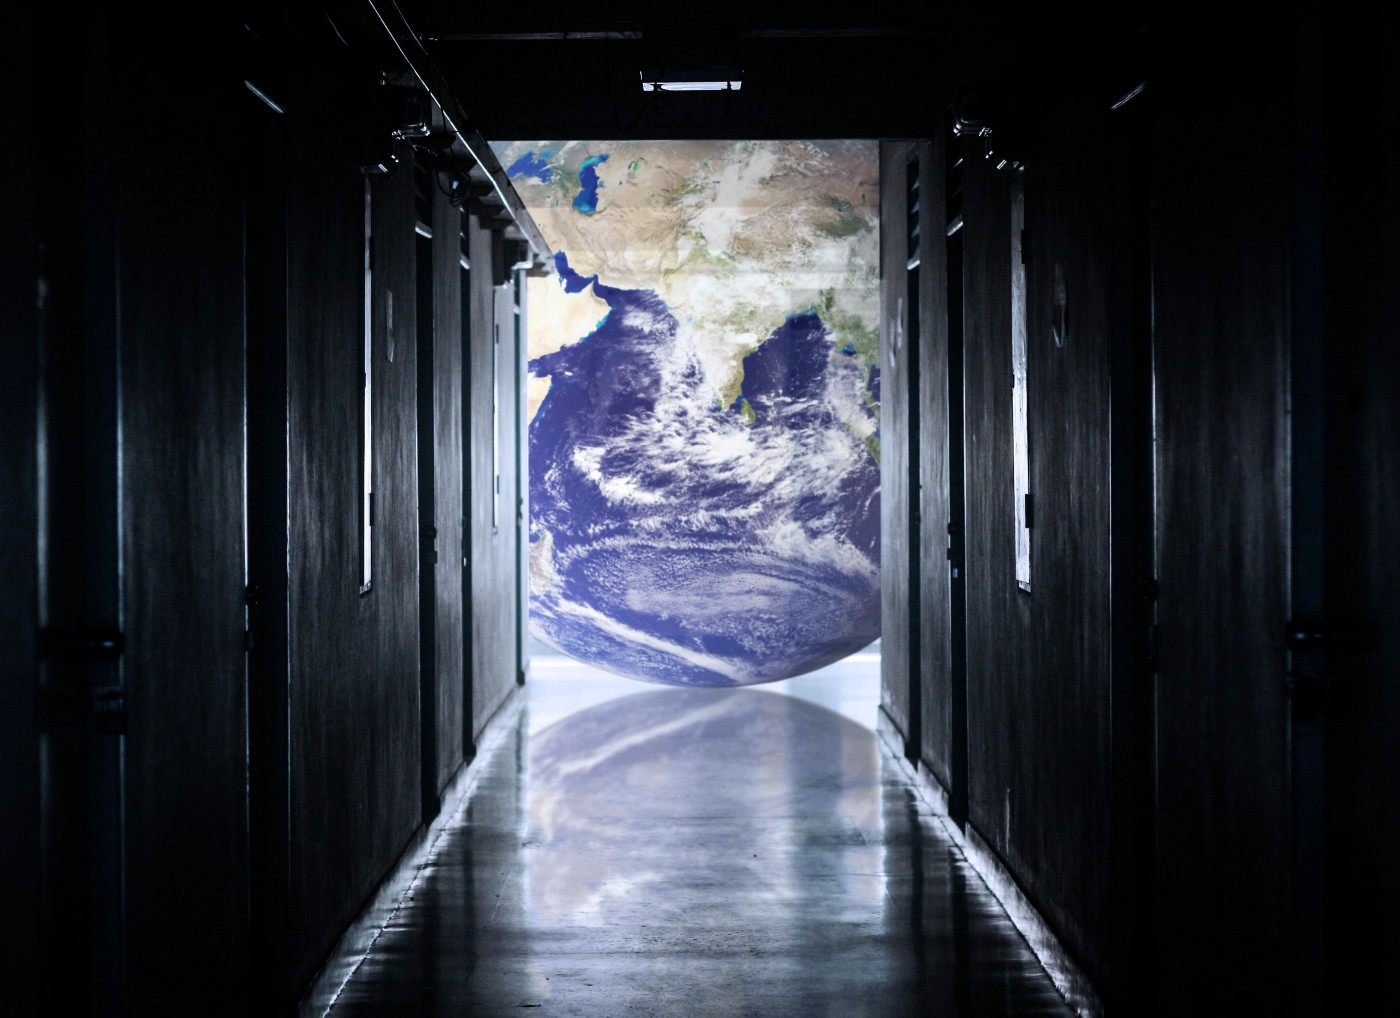 World at the end of a corridor